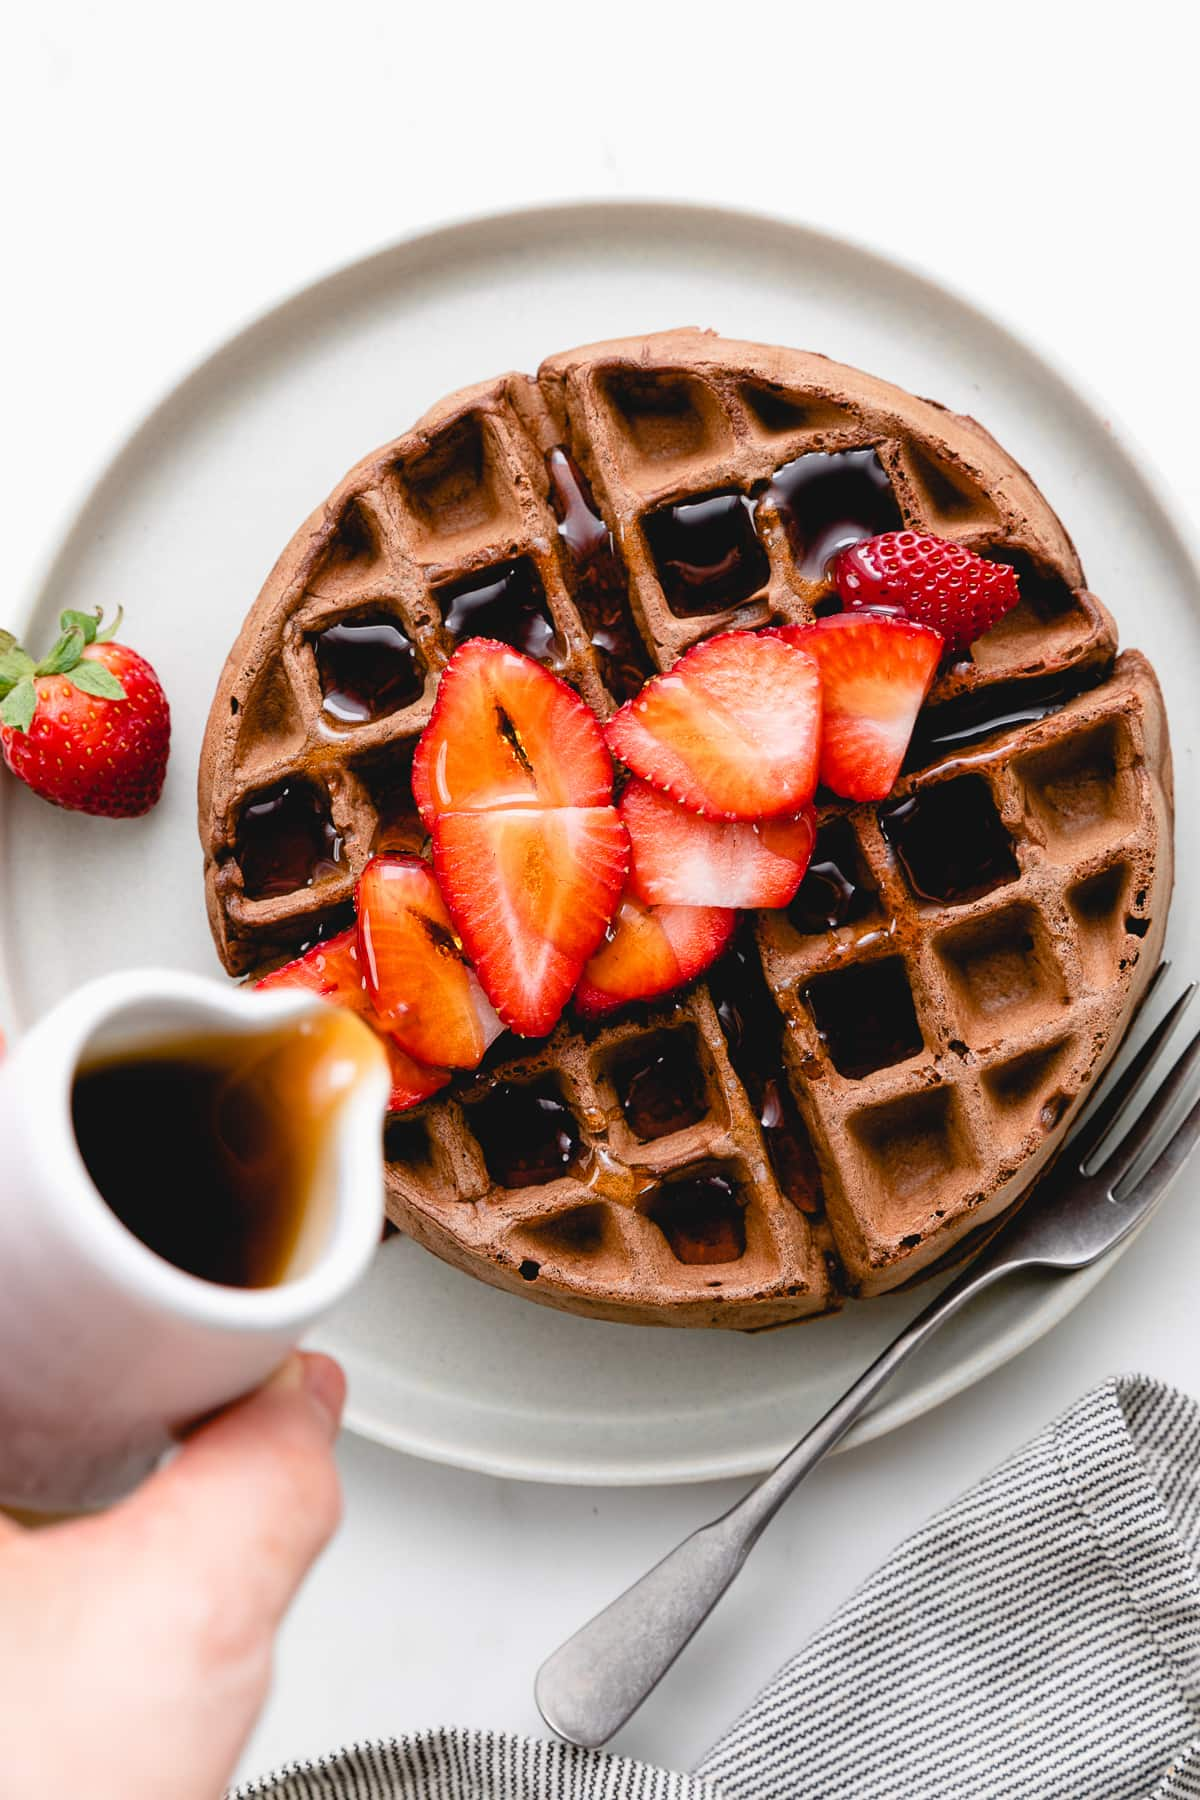 top down view of healthy vegan chocolate belgian waffle on a plate with syrup being poured overtop.